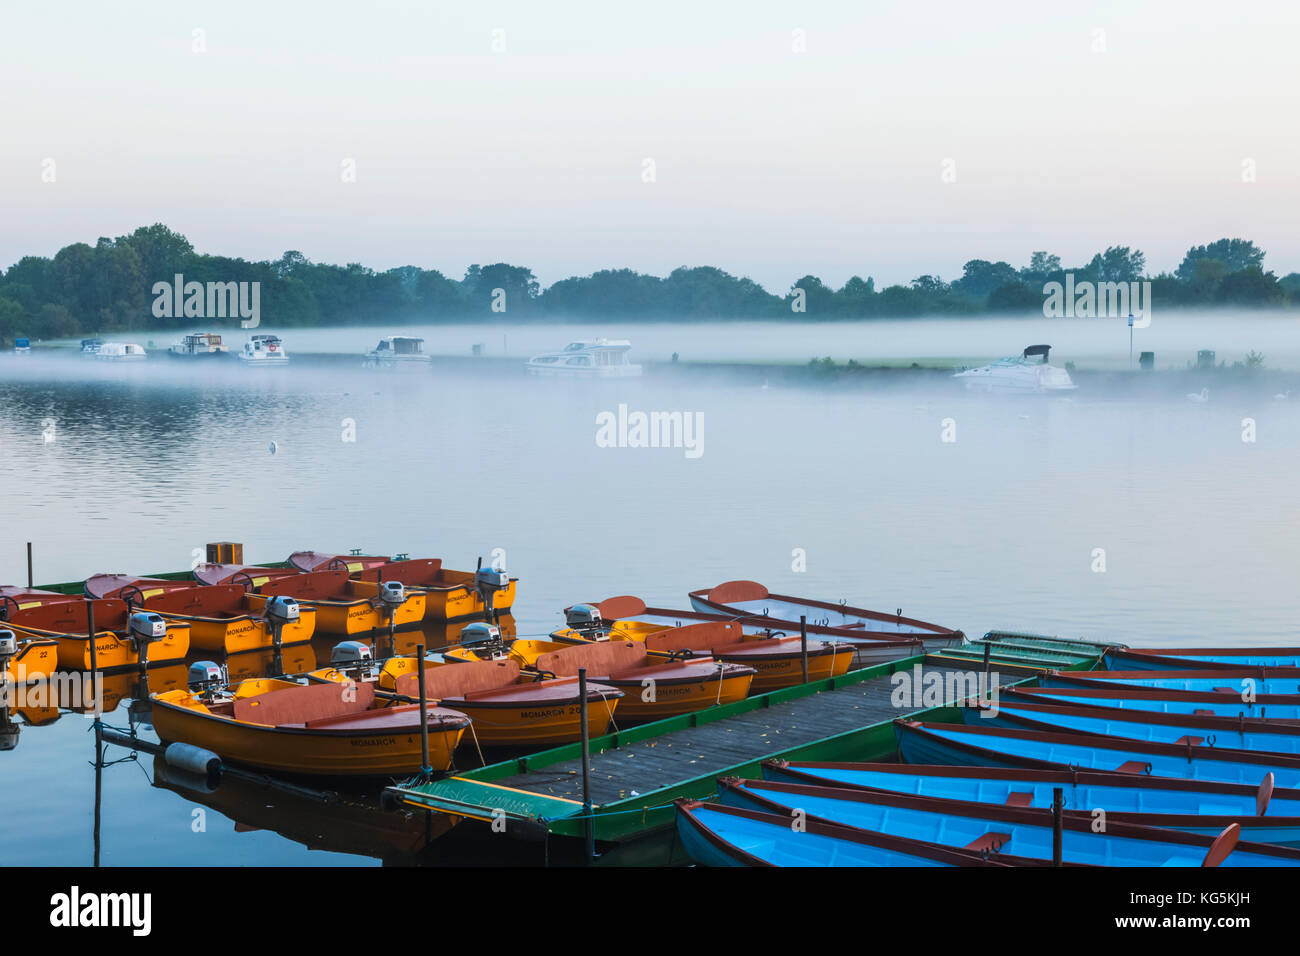 England, Berkshire, Windsor, Rowing Boats - Stock Image